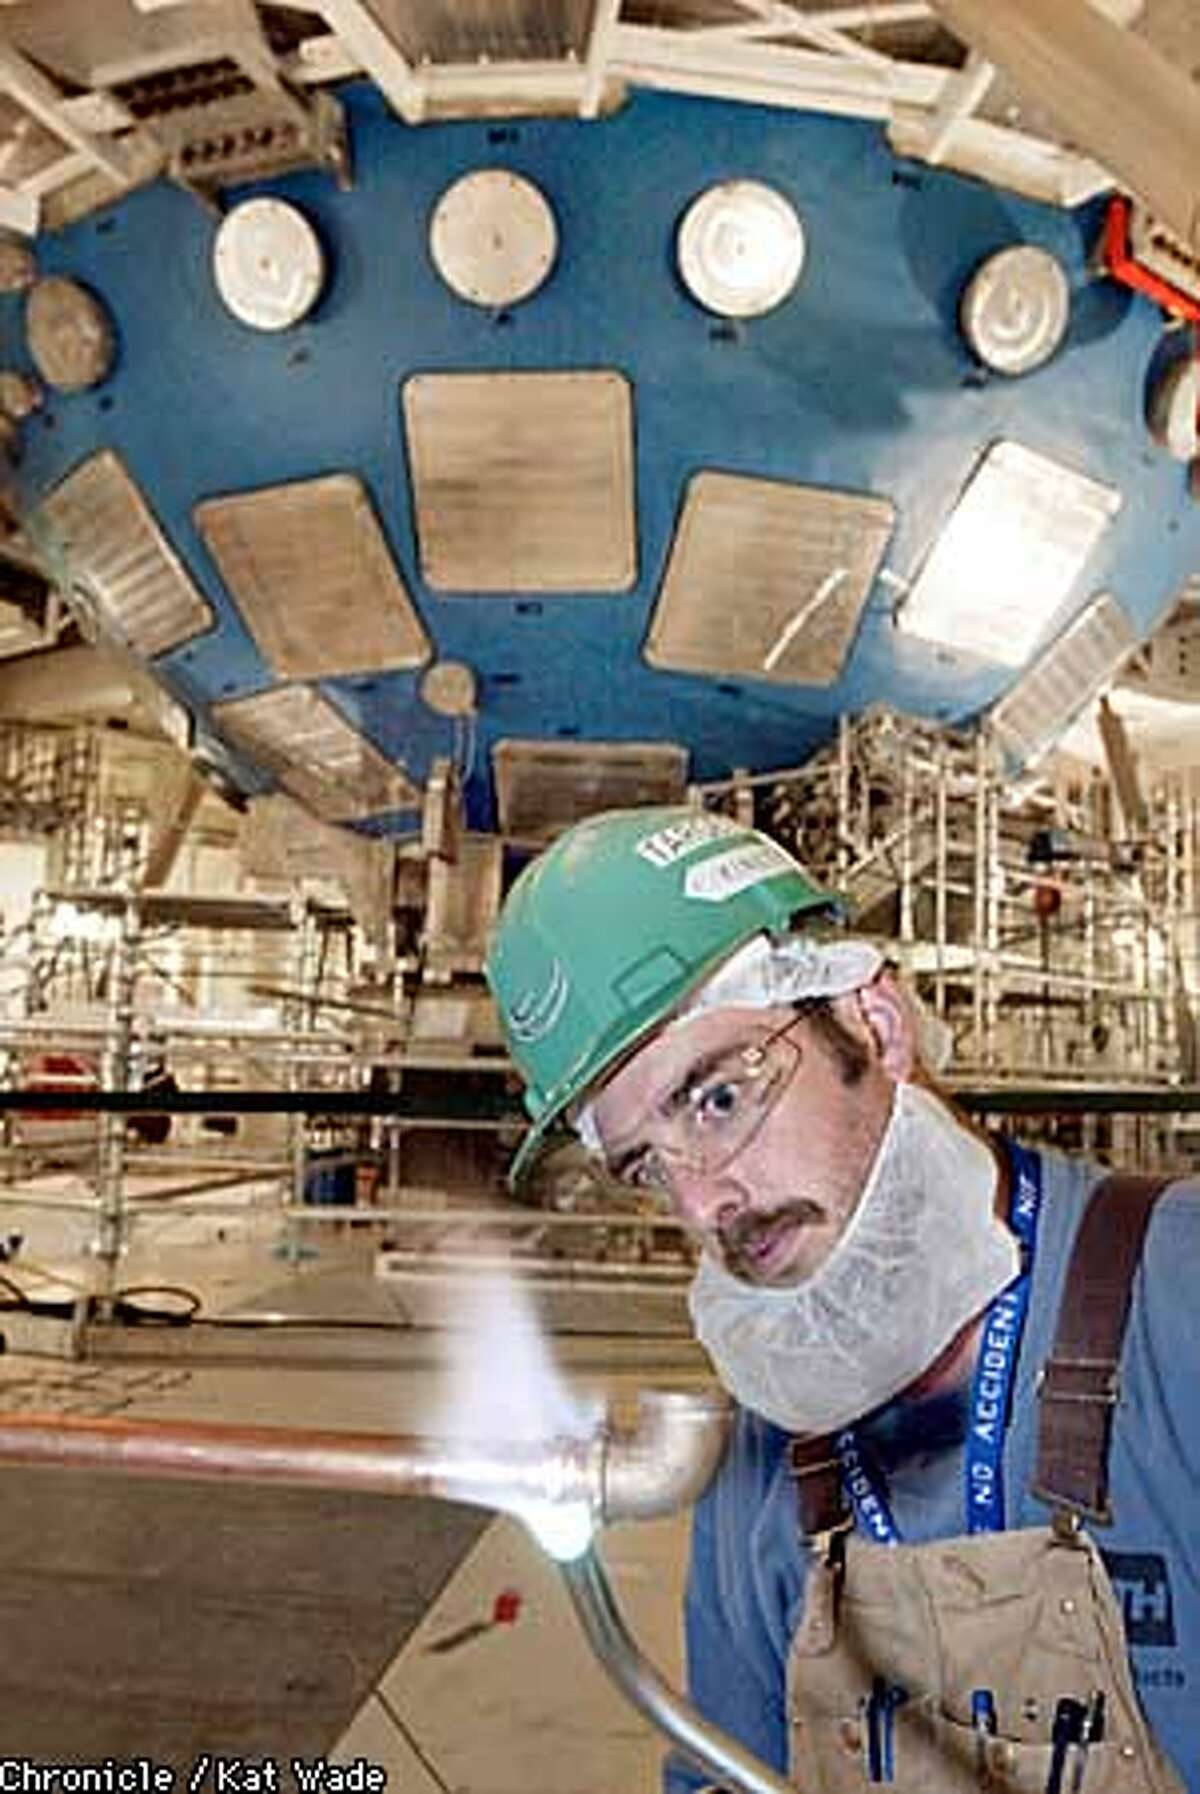 Neal Fouts with Kenetics mechanical contractor welds some pipe with the huge target chamber of the new NIF (National Ignition Facility) at the Lawrence Livermore Lab in the background. SAN FRANCISCO CHRONICLE PHOTO BY KAT WADE